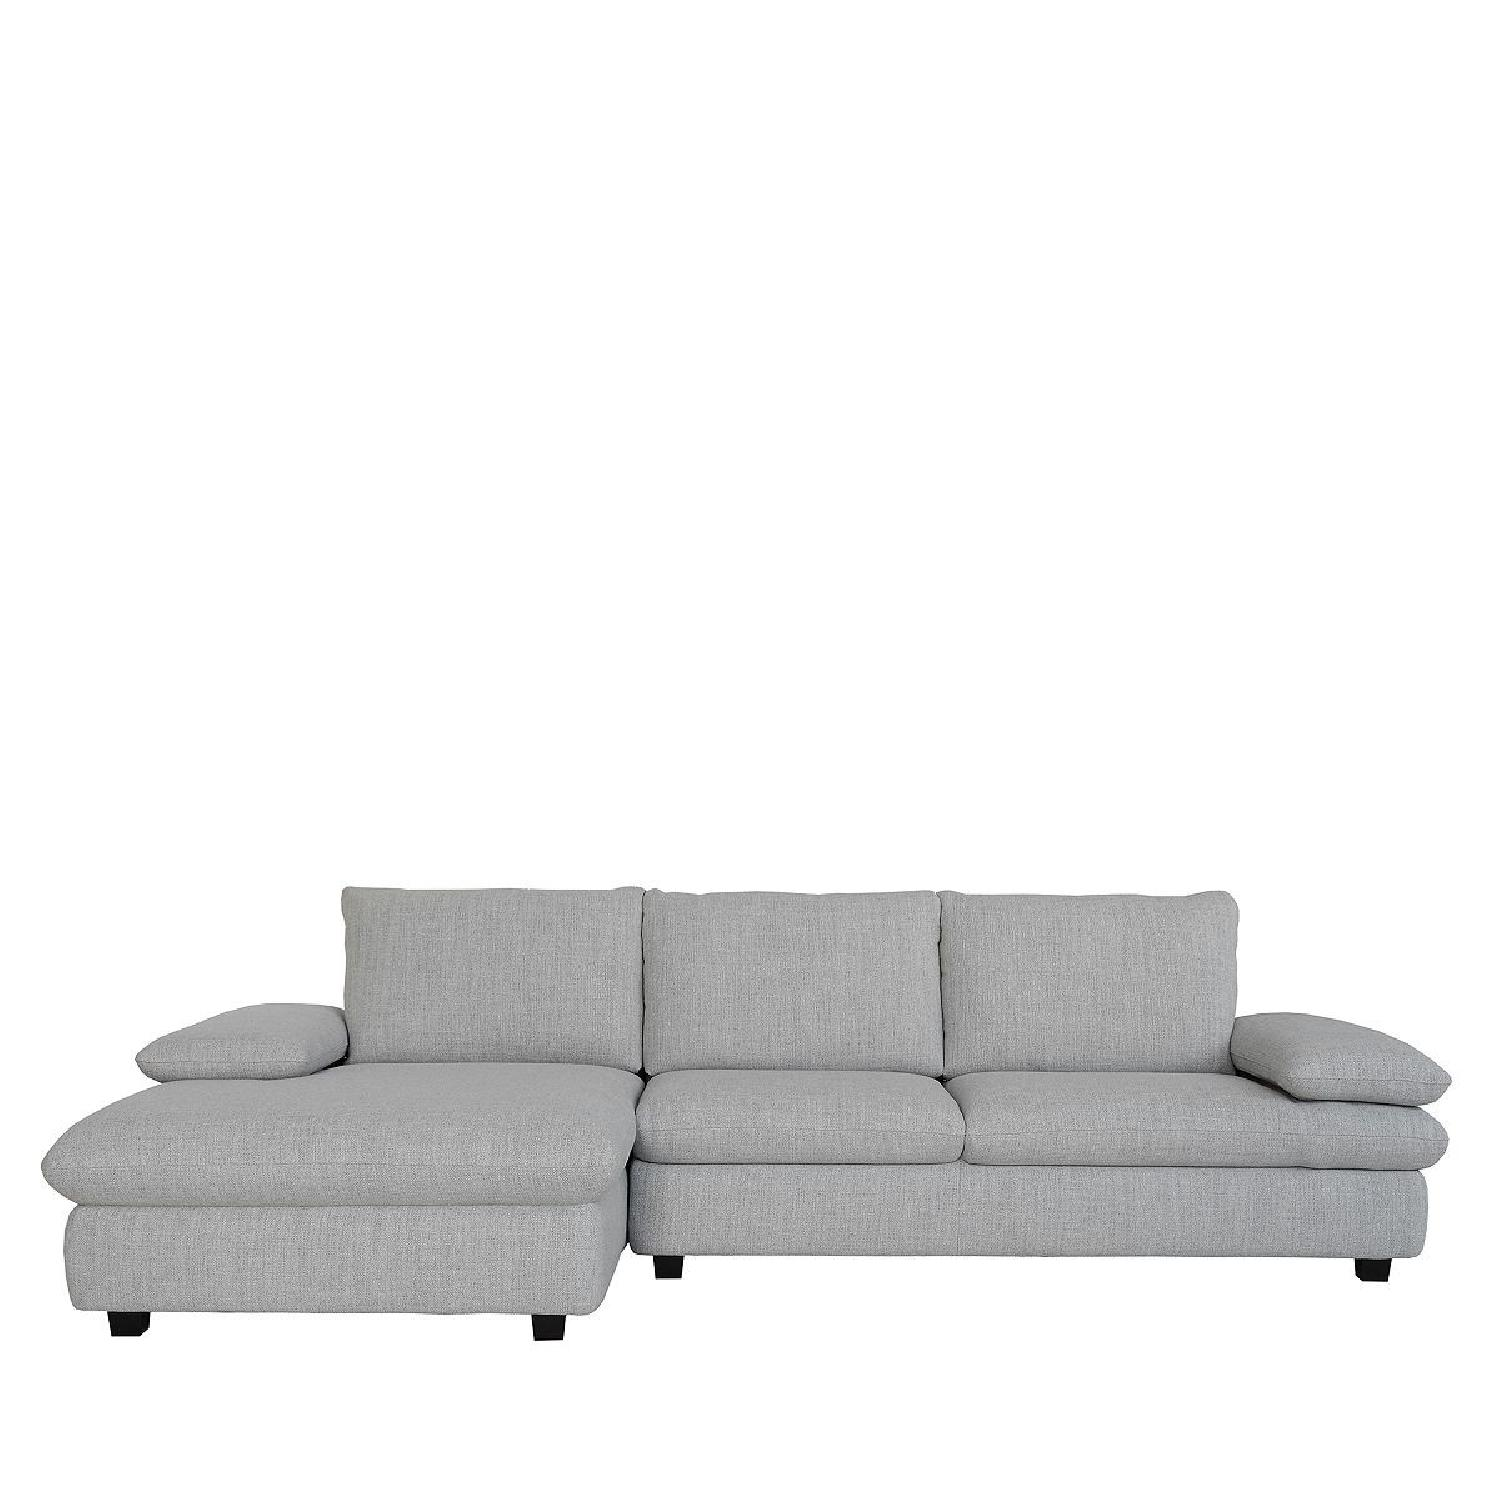 ... Chateau Du0027ax Mason 2 Piece Left Facing Chaise Sectional Sofa 0 ...